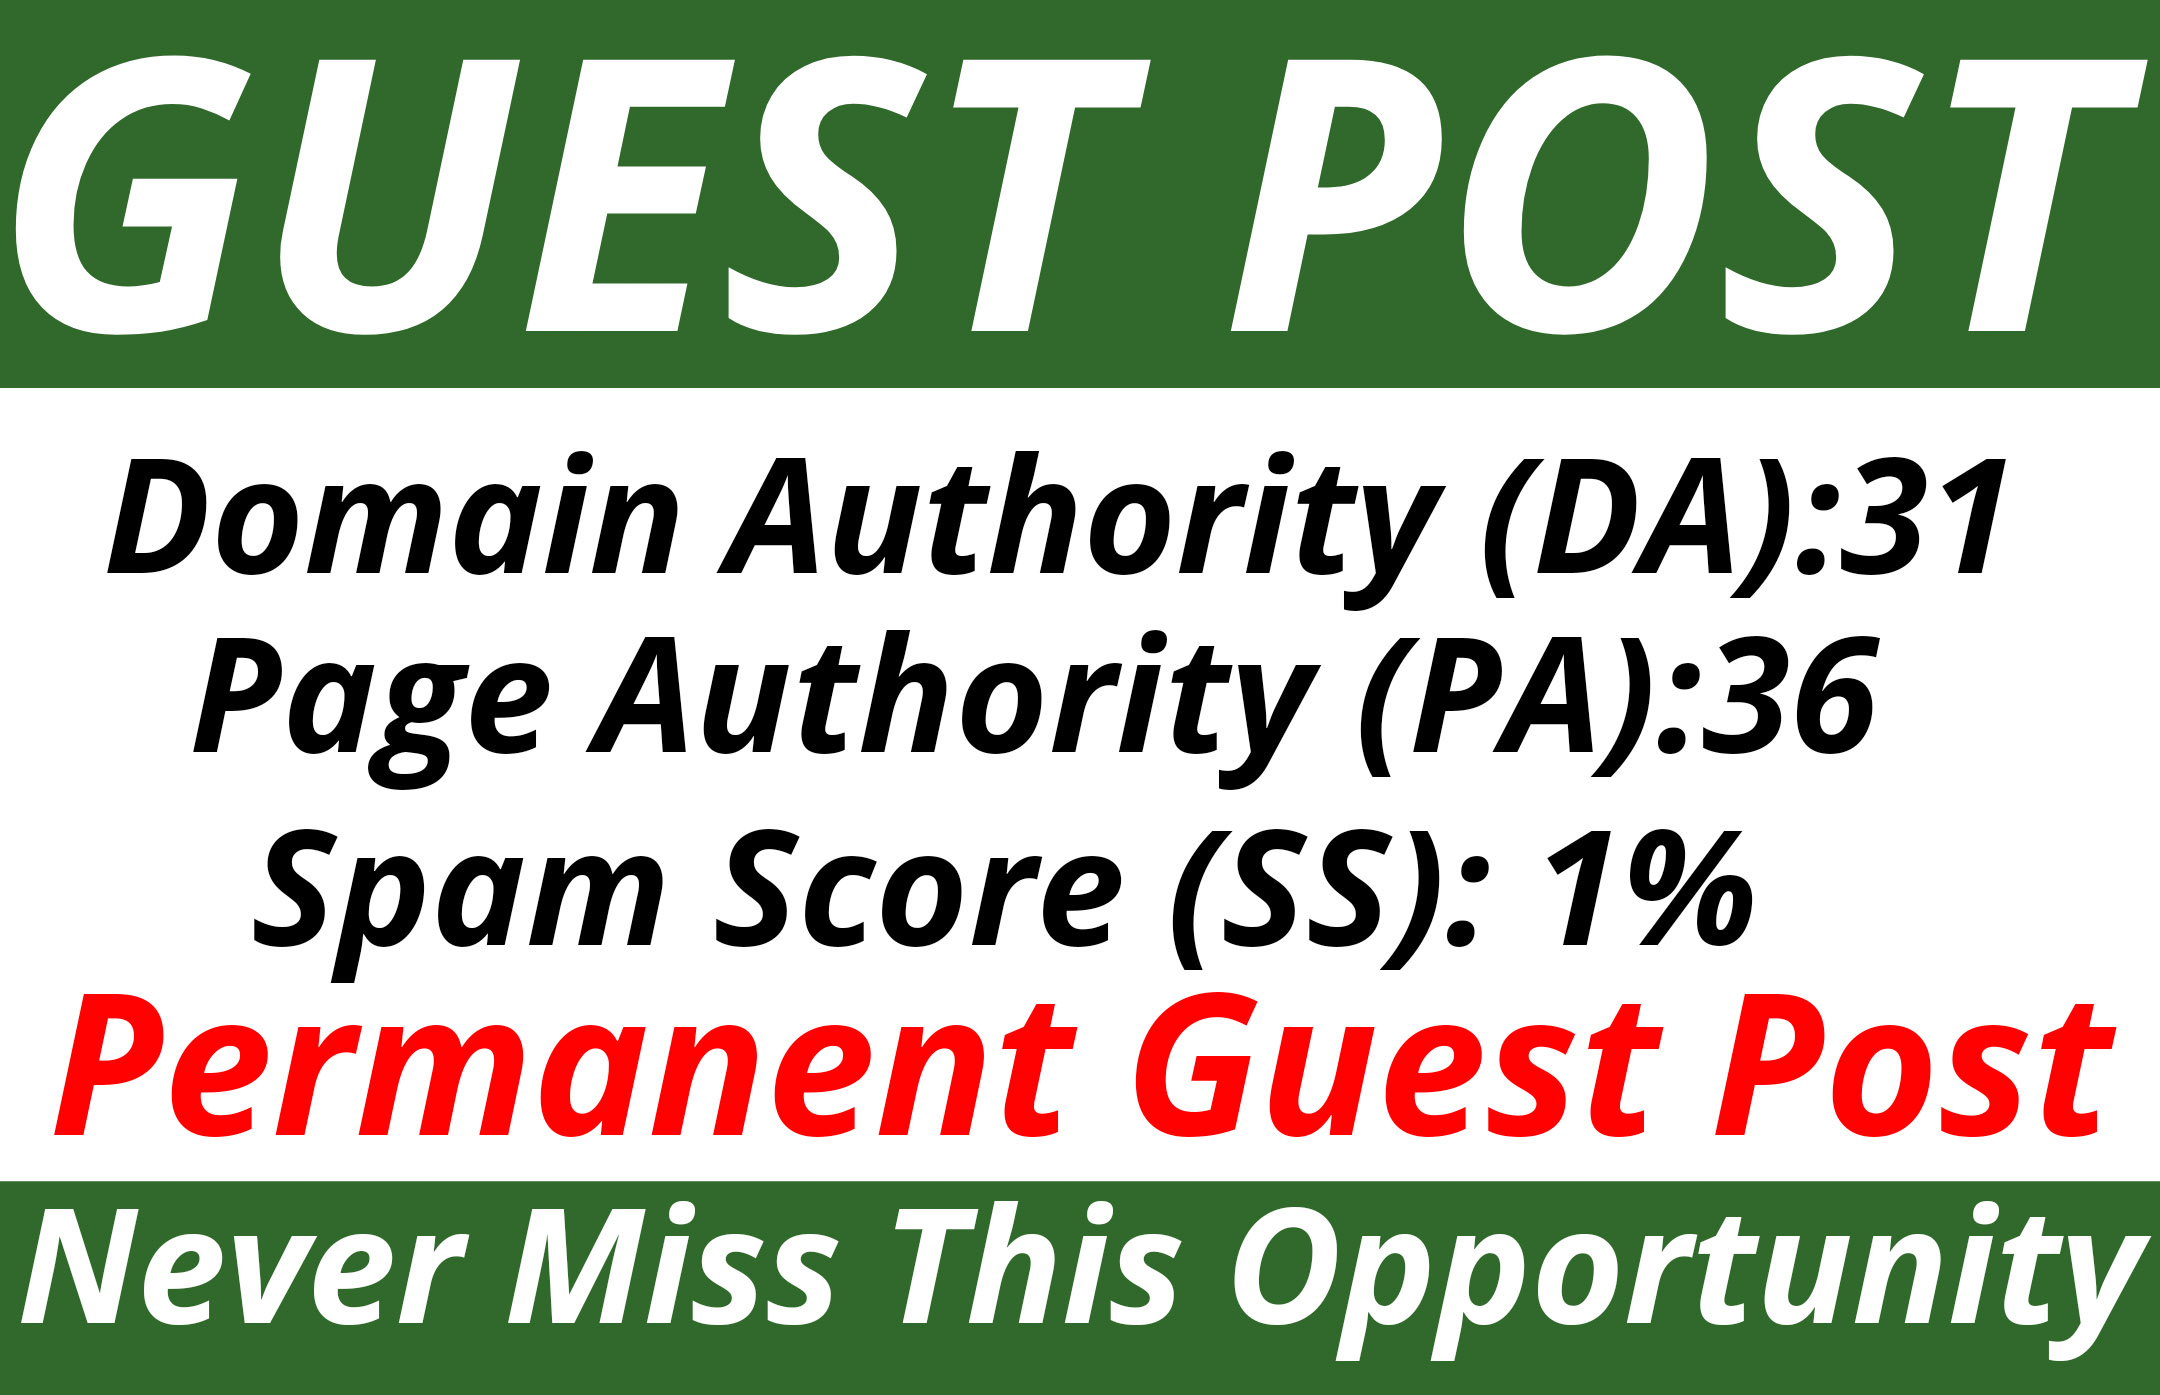 Publish a Guest Post on DA31 PA36 with Permanent Link